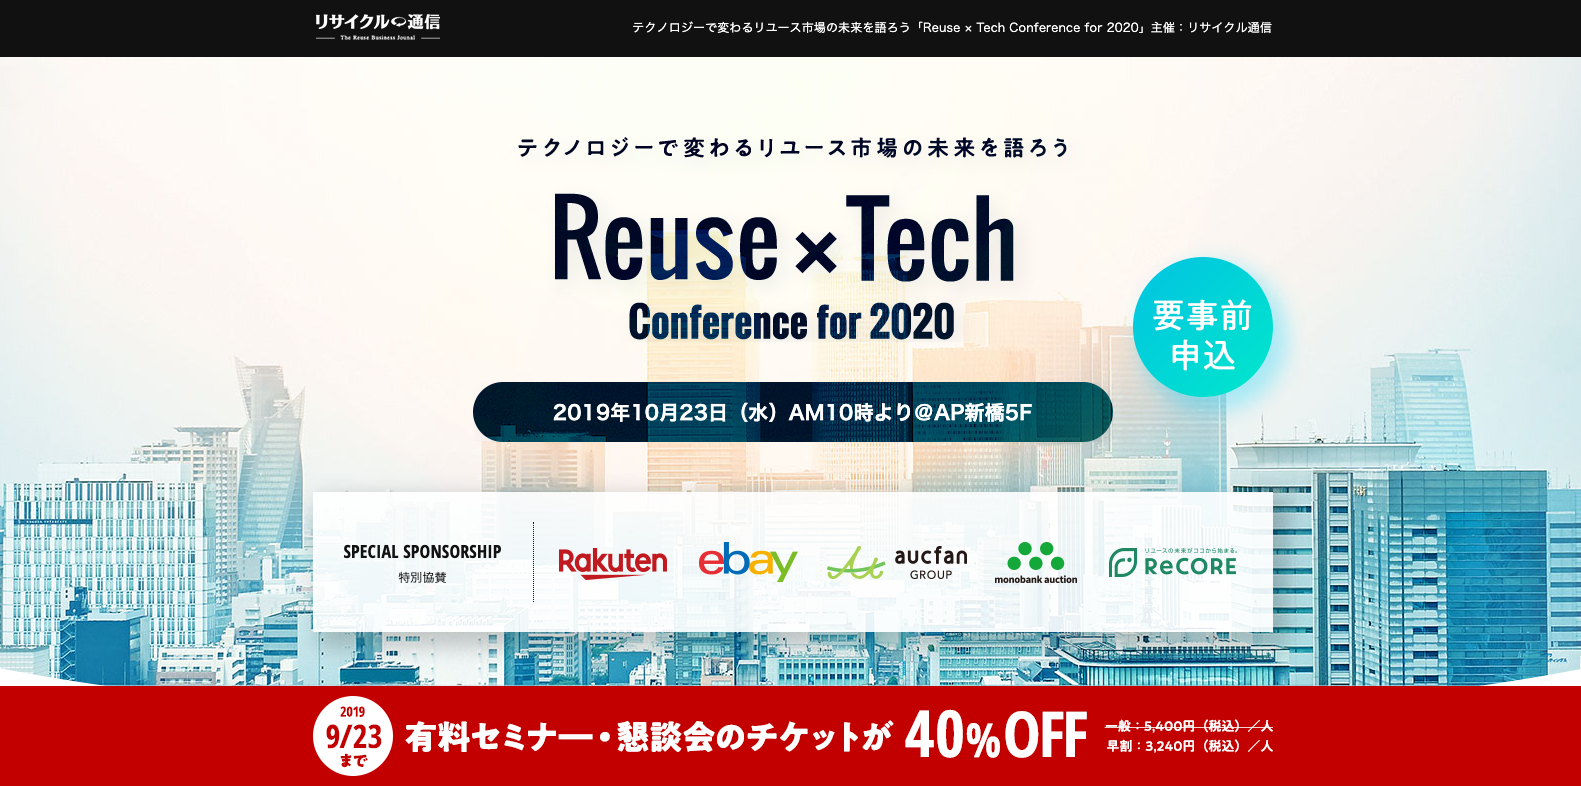 Reuse×Tech Conference for 2020